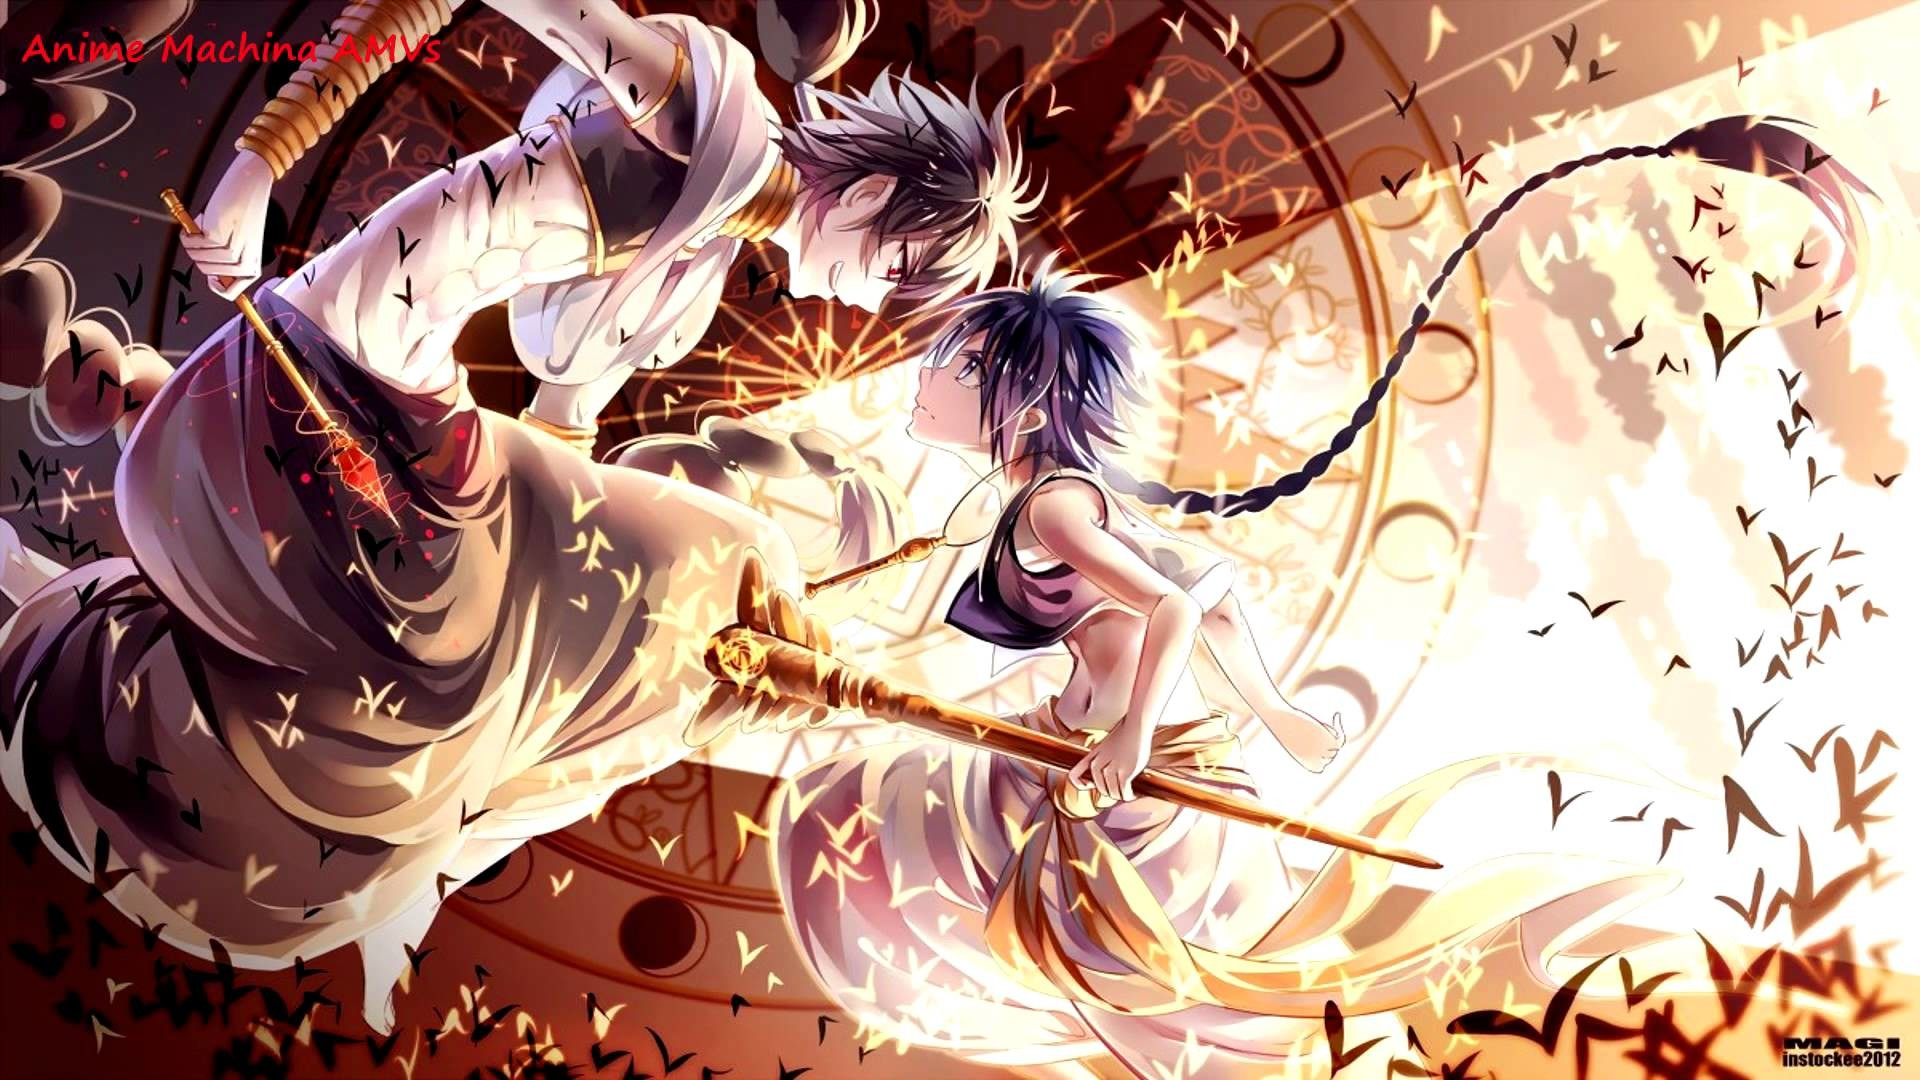 Res: 1920x1080, Epic Anime Fighting Wallpapers High Resolution Is Cool Wallpapers